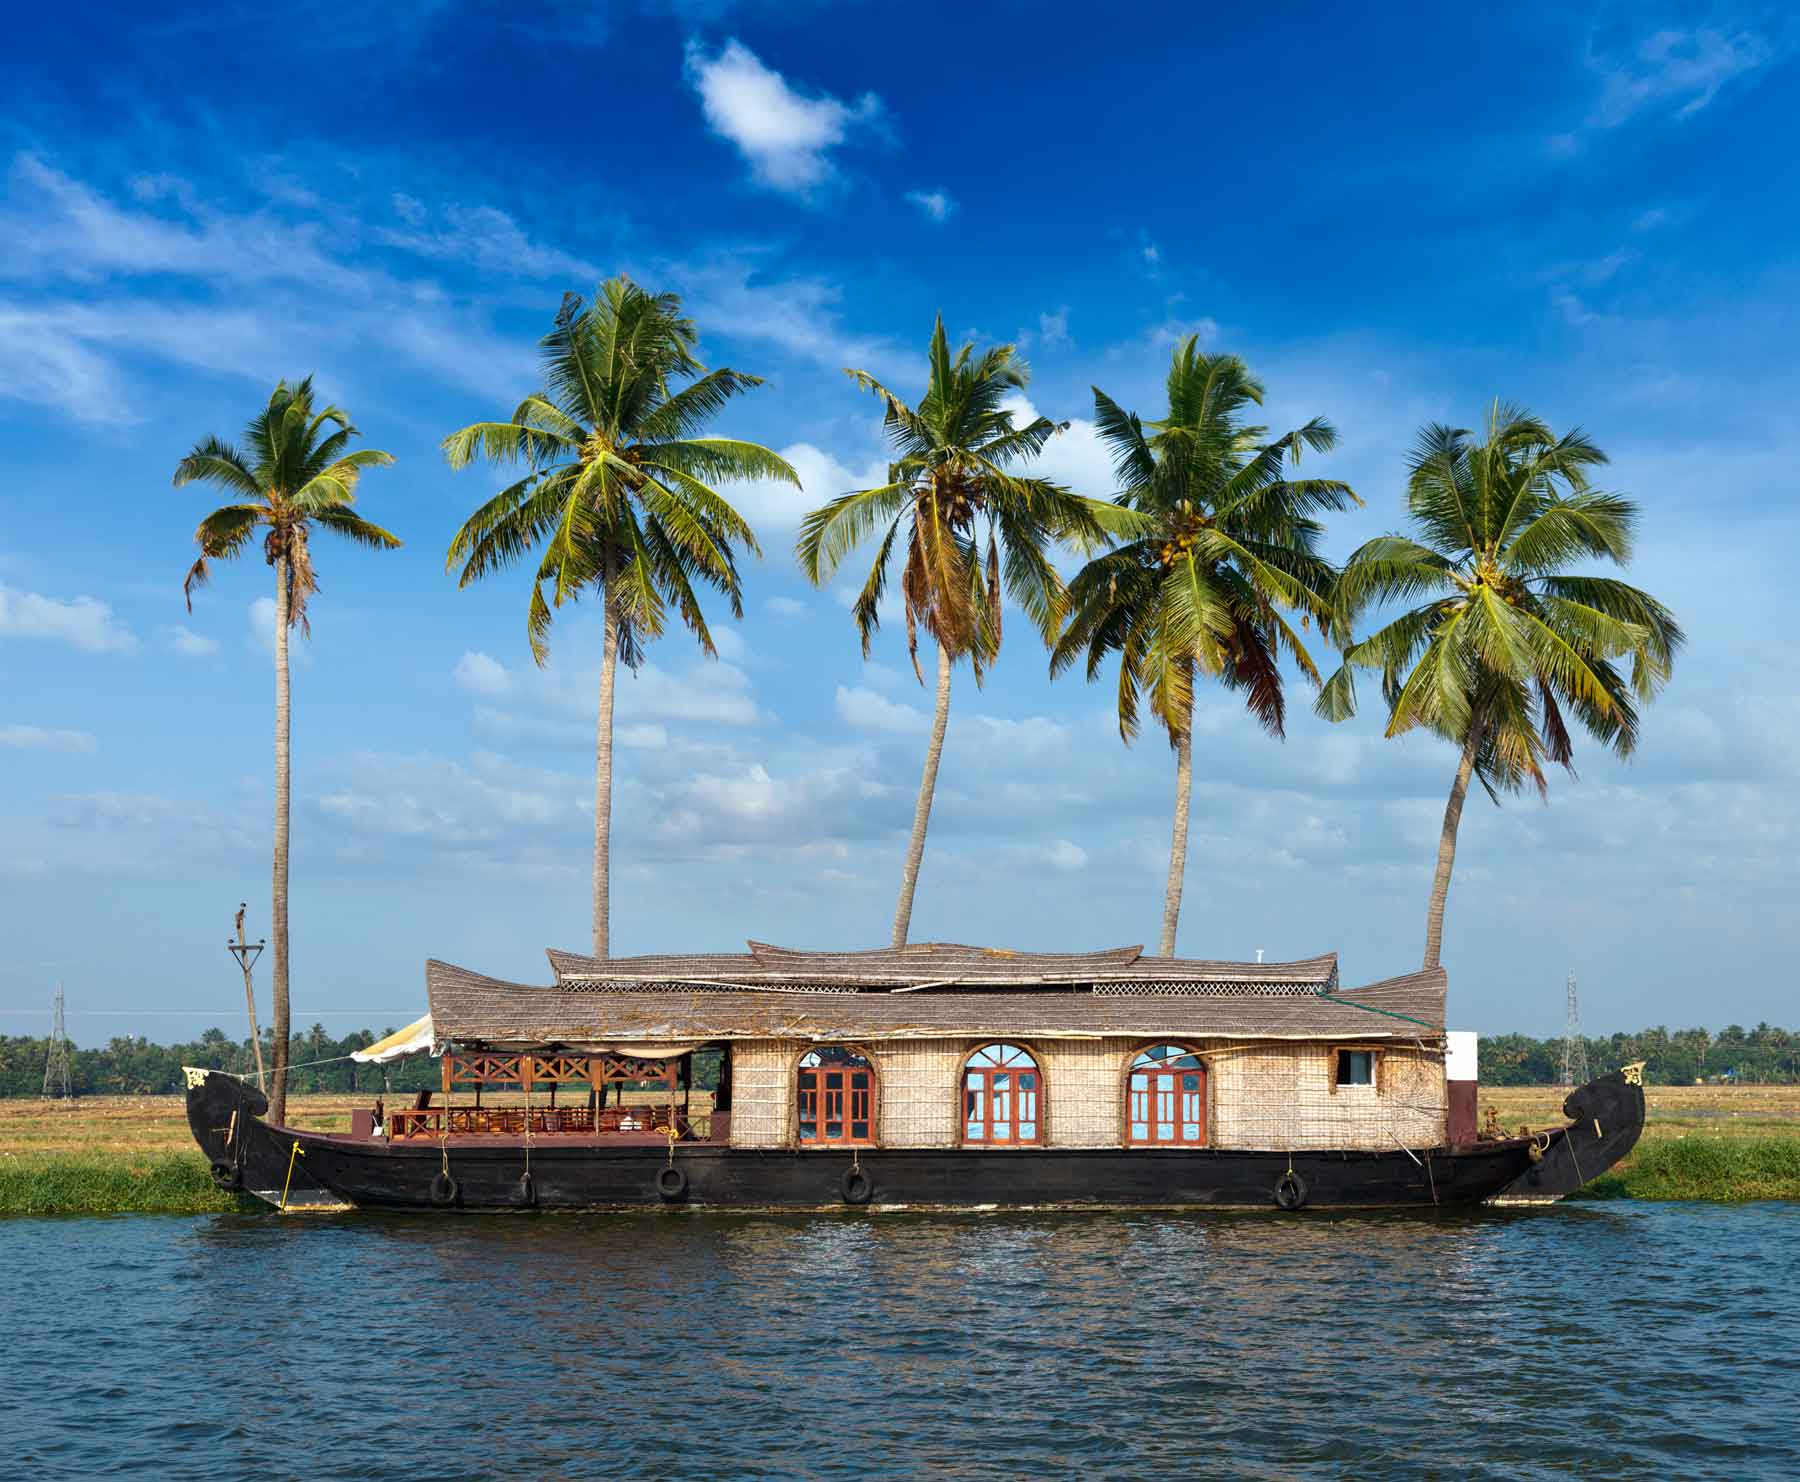 Backwaters and Houseboats in Kerala, India